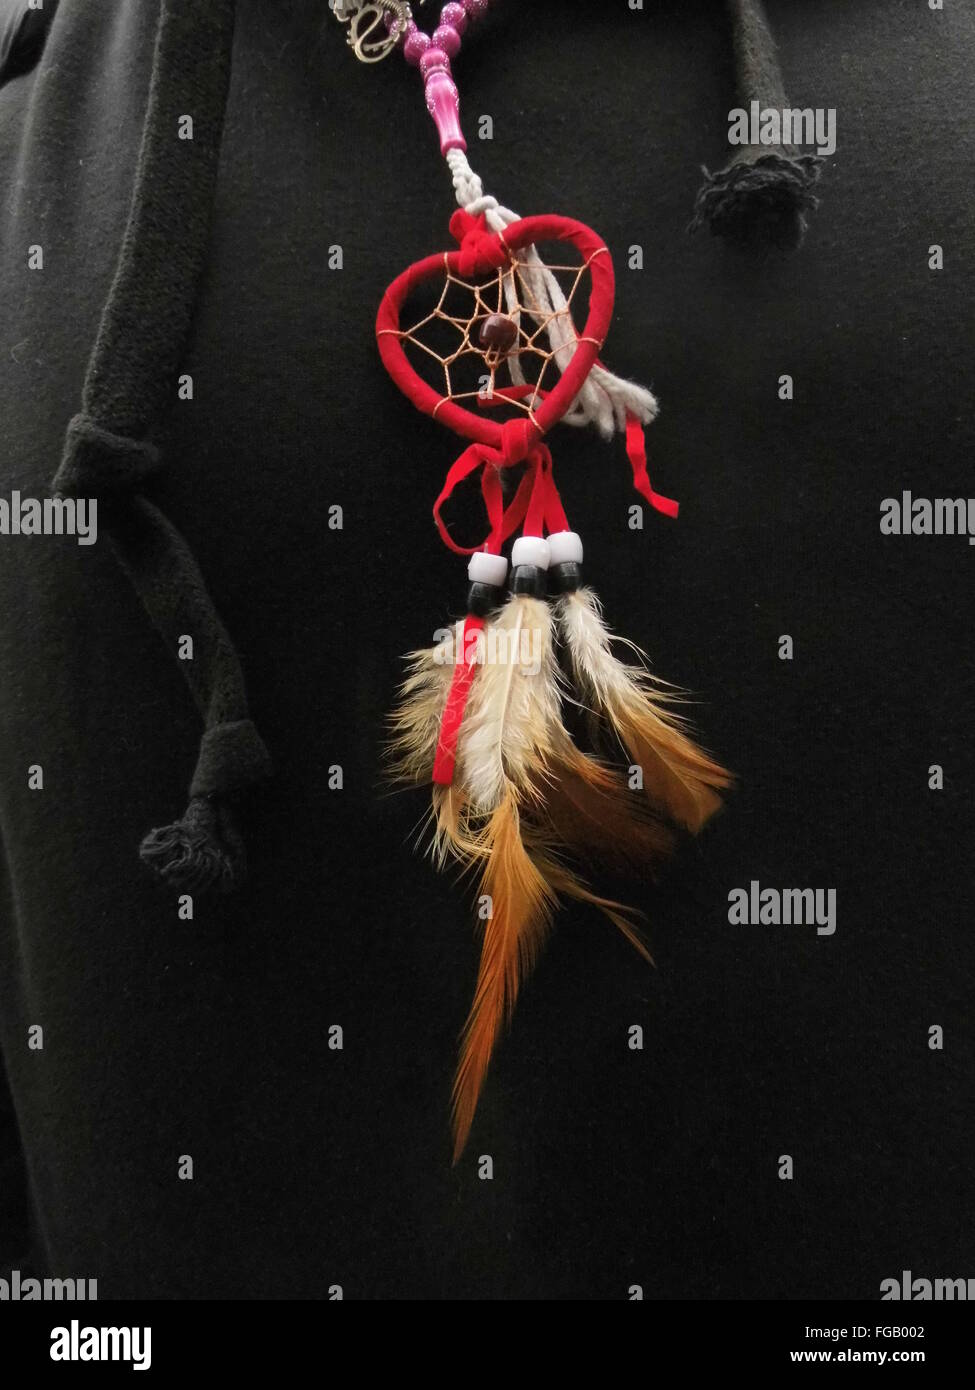 Midsection Of Person With Dreamcatcher - Stock Image